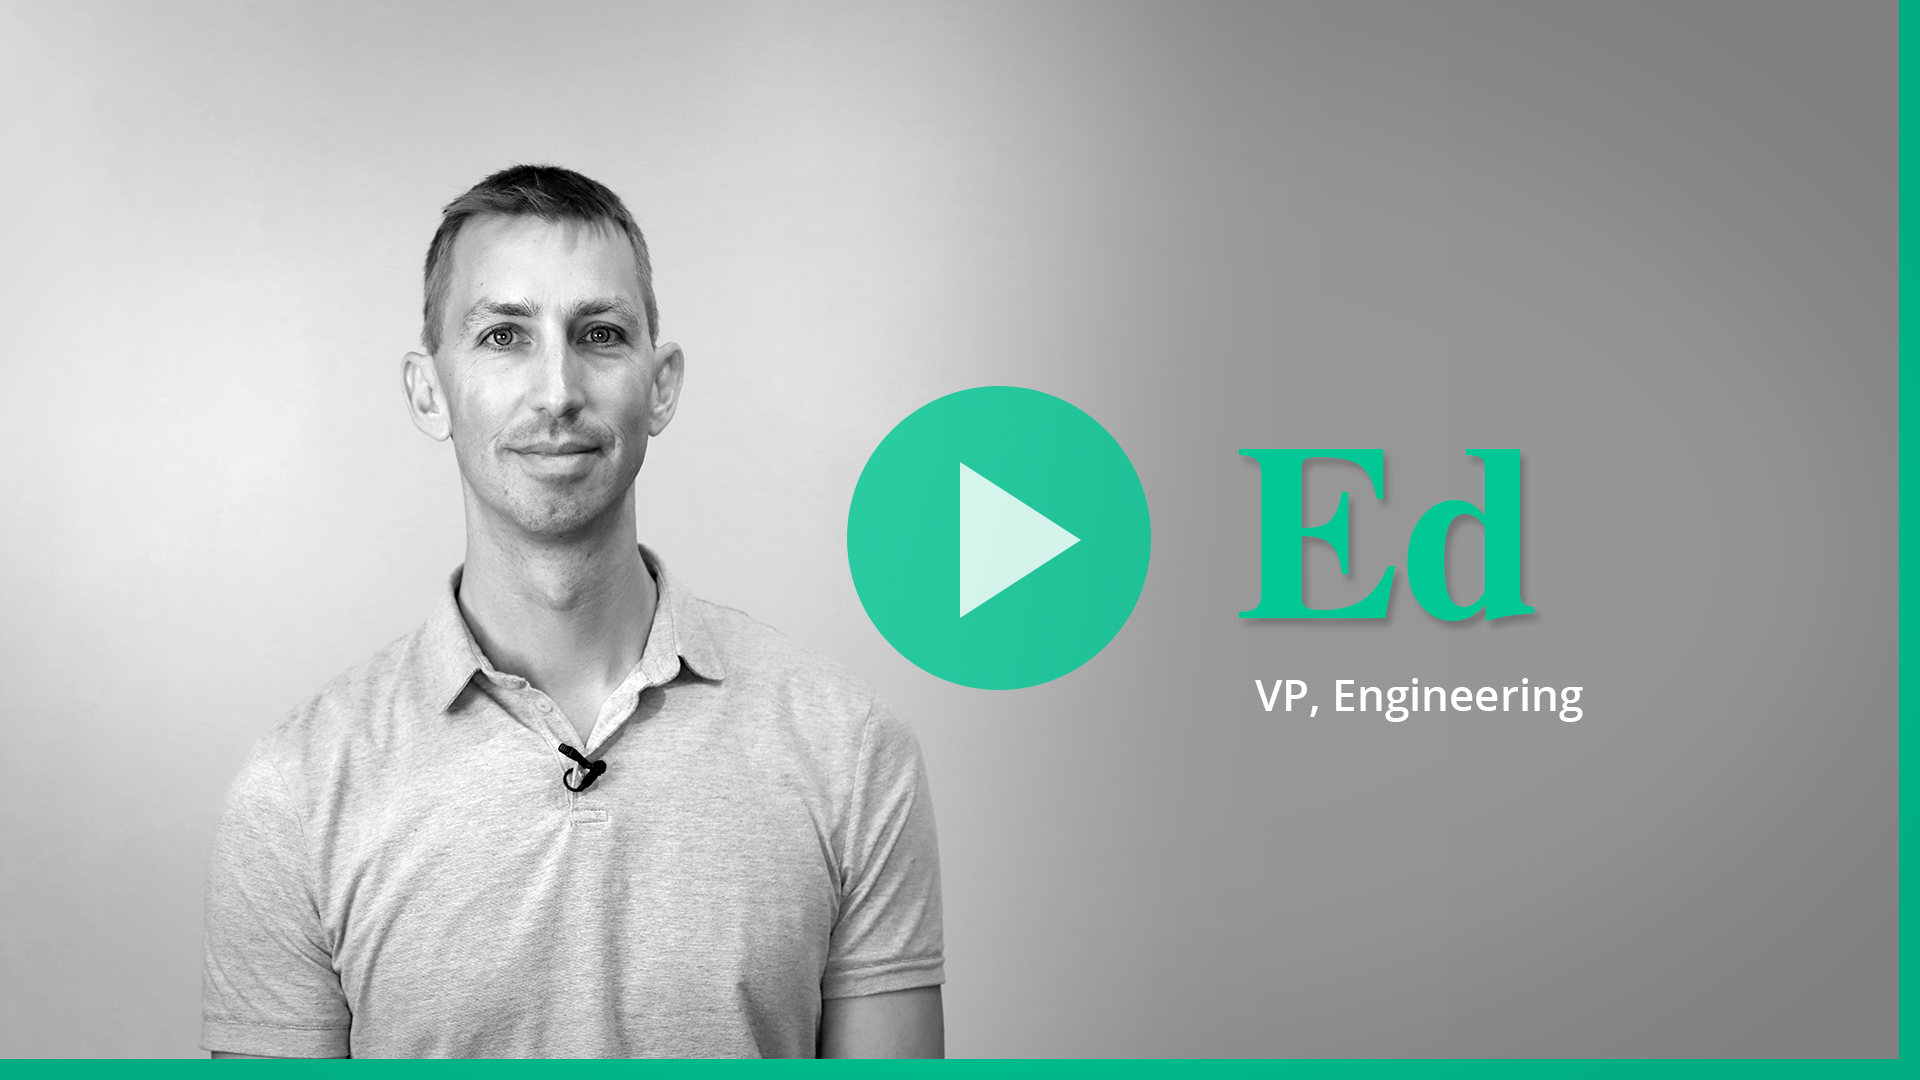 Ed video for Career page